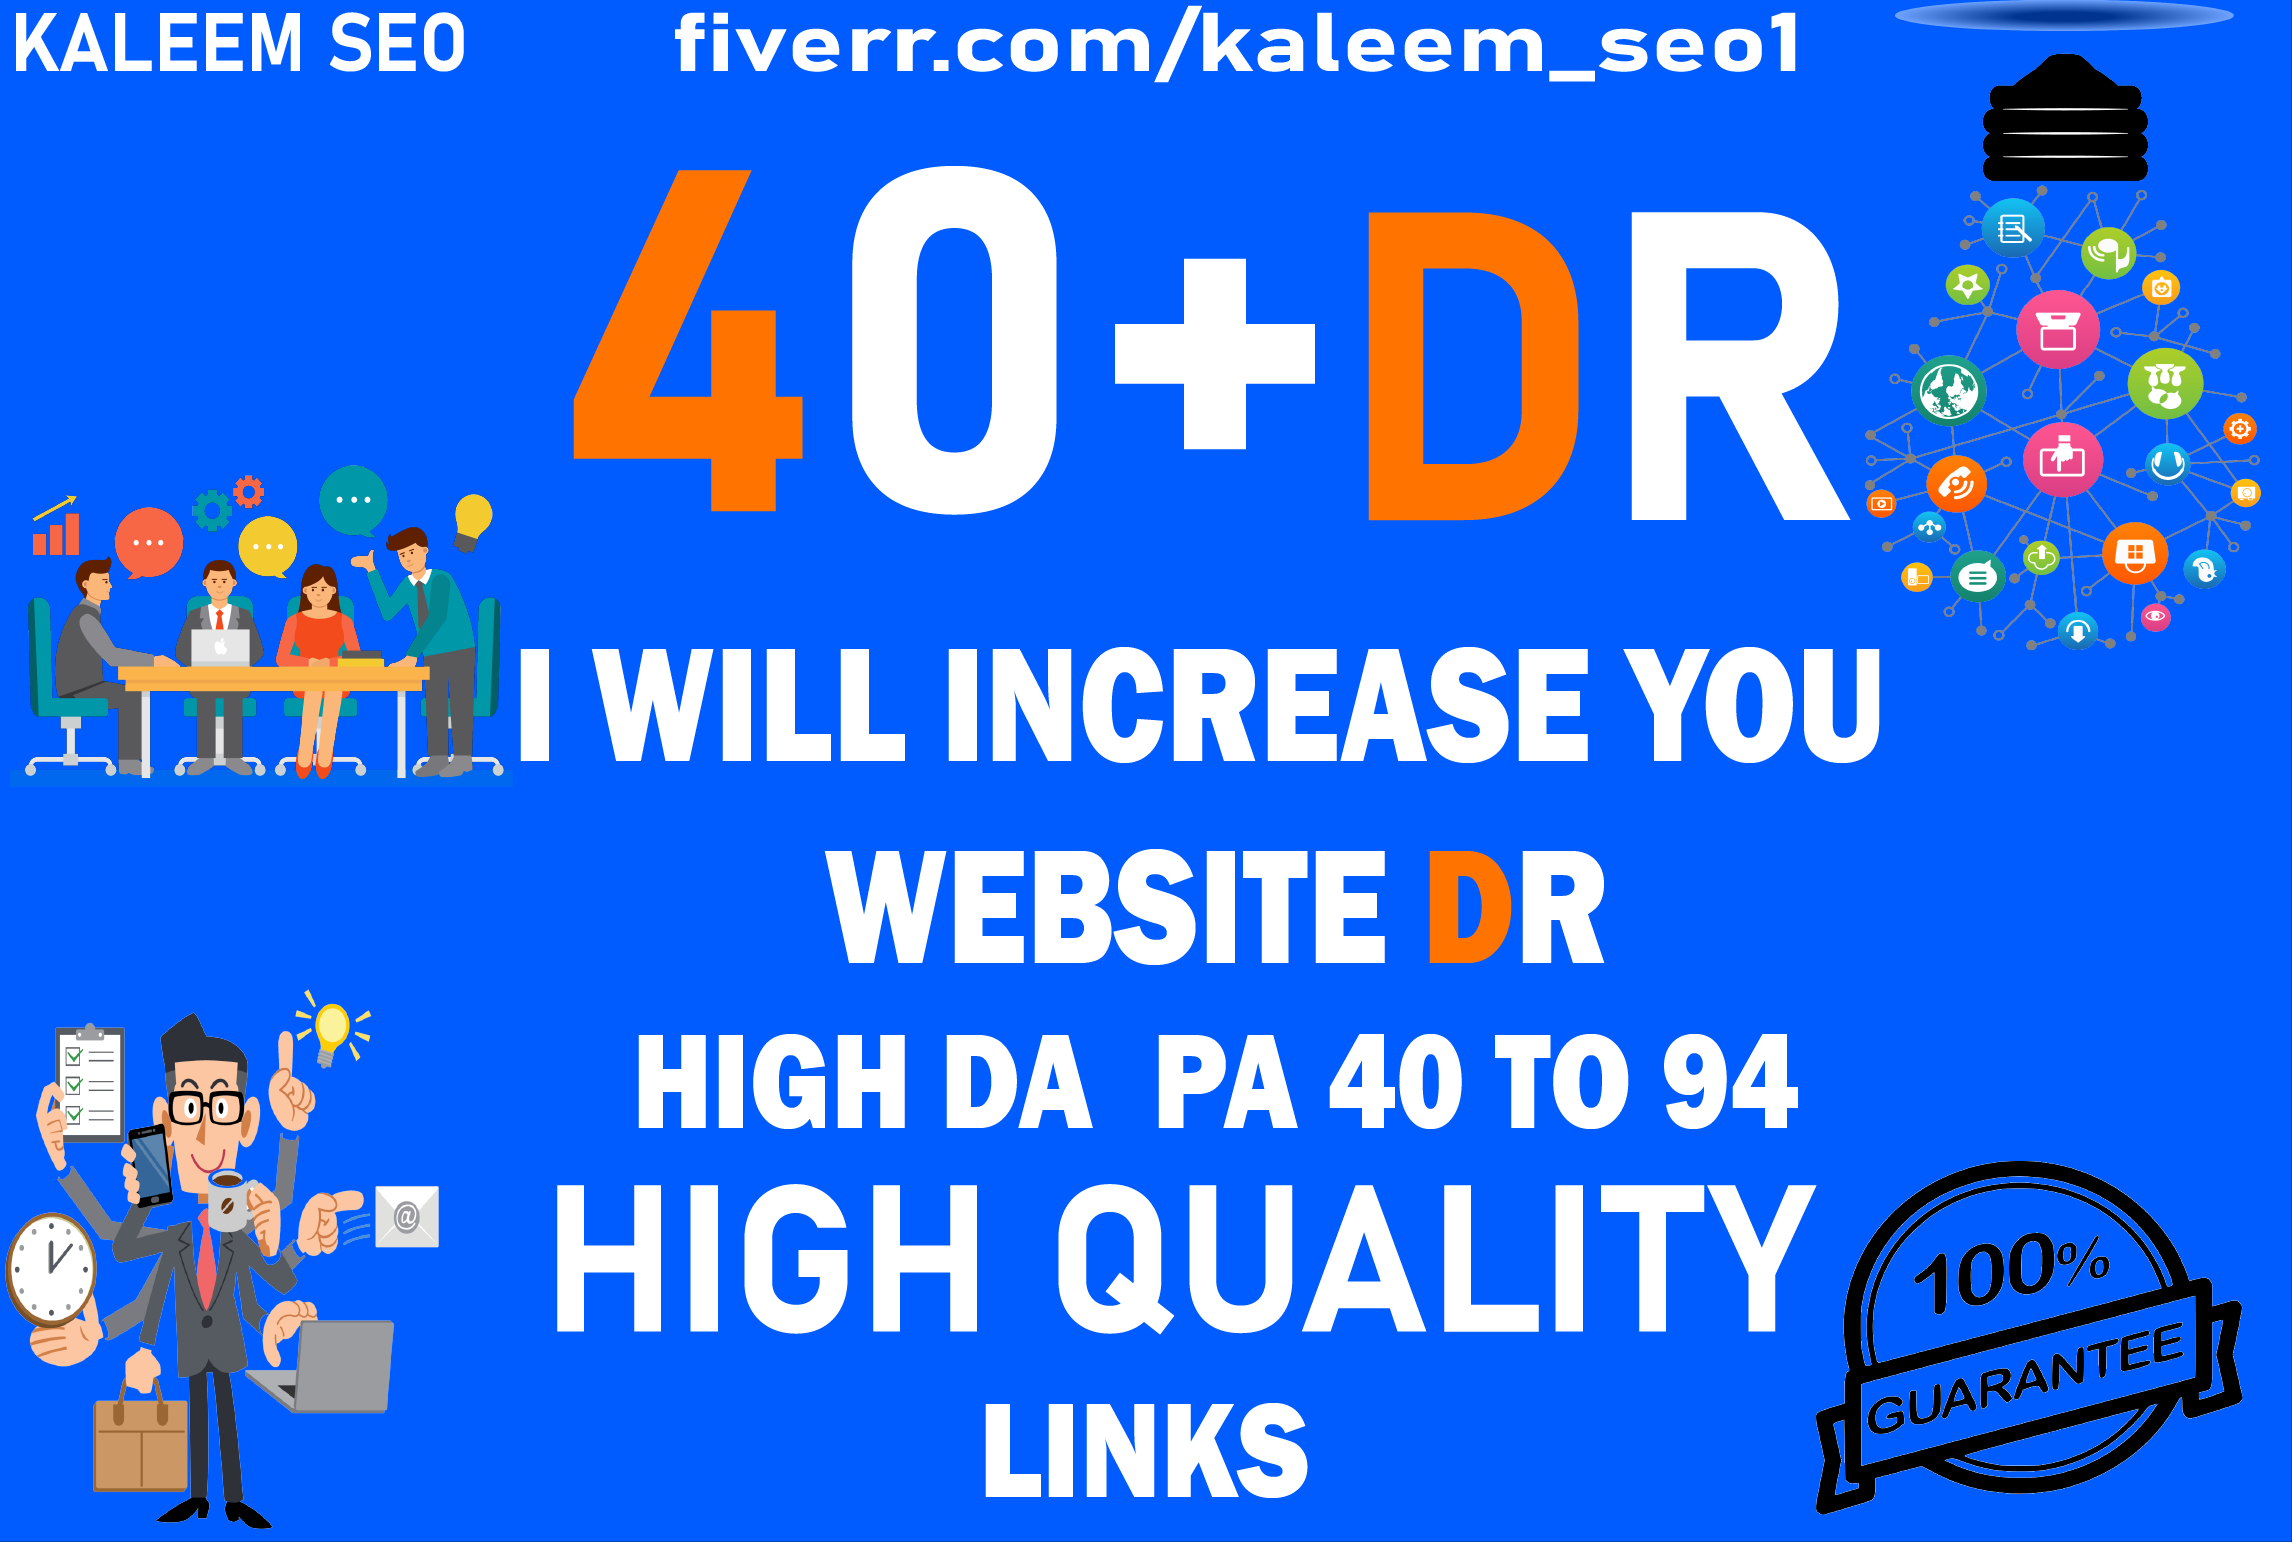 I will increase ahrefs DR domain rating to 40+